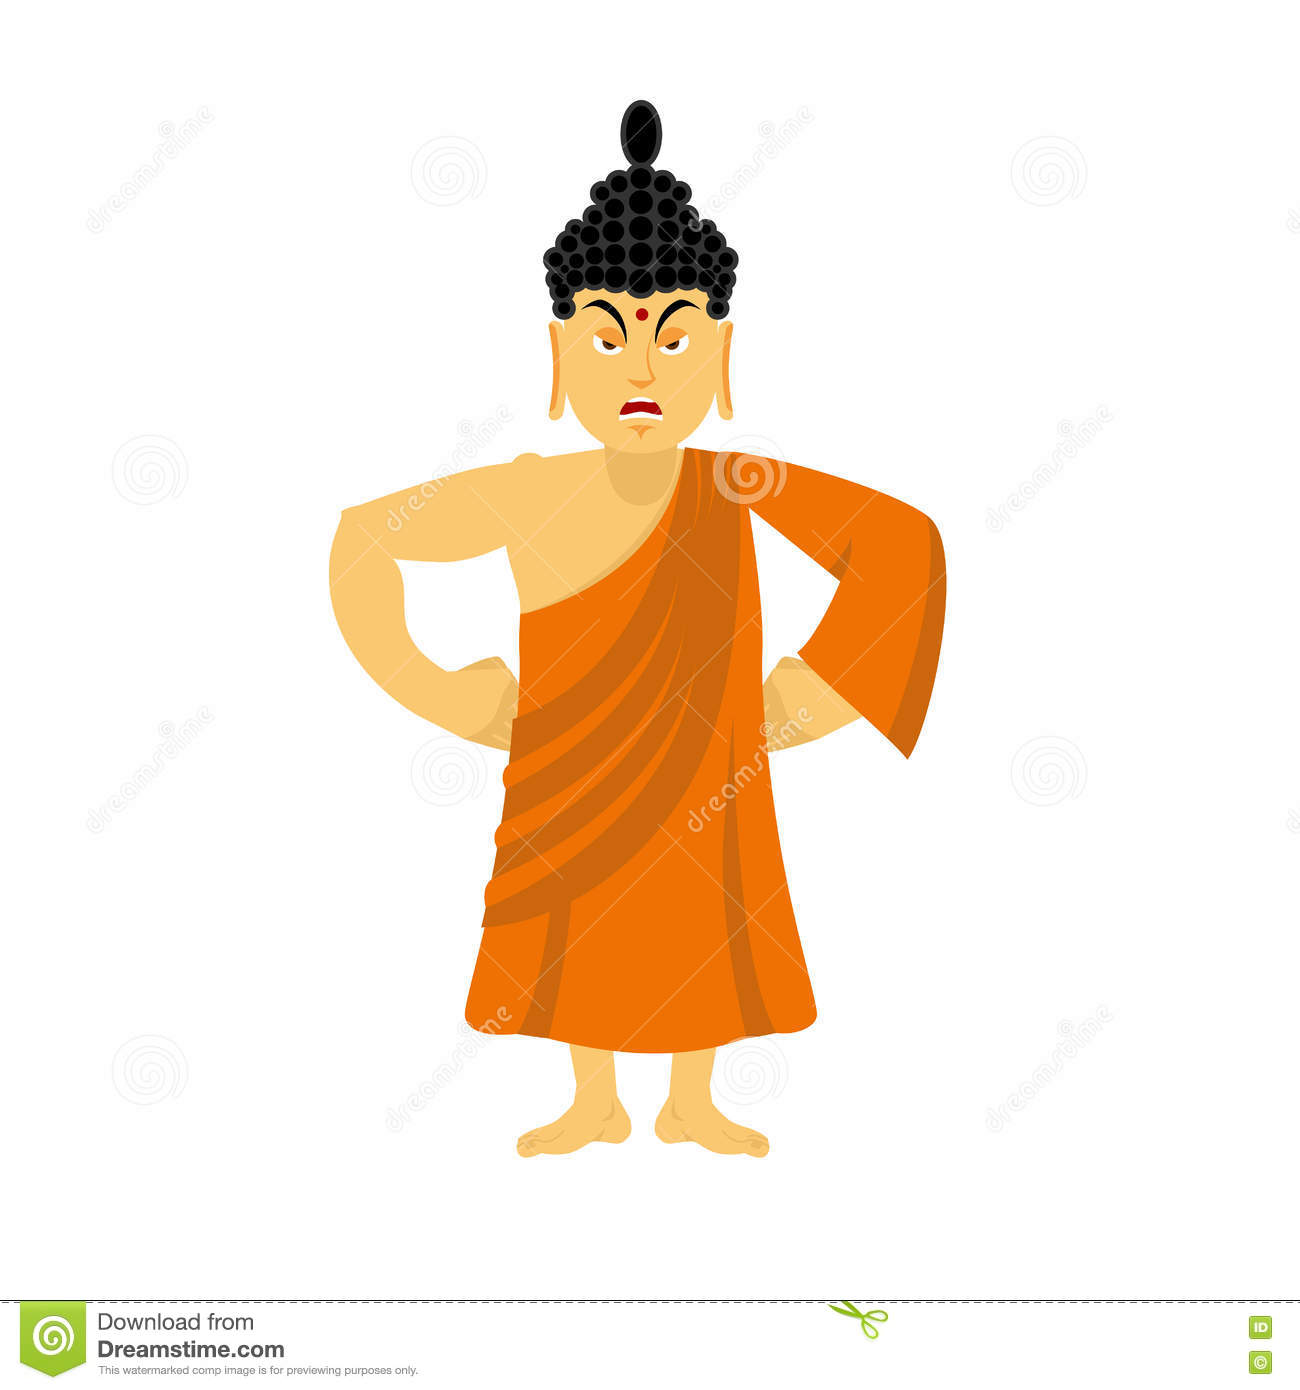 speonk buddhist single men Meet buddhist mexican men interested in dating there are 1000s of profiles to view for free at mexicancupidcom - join today.